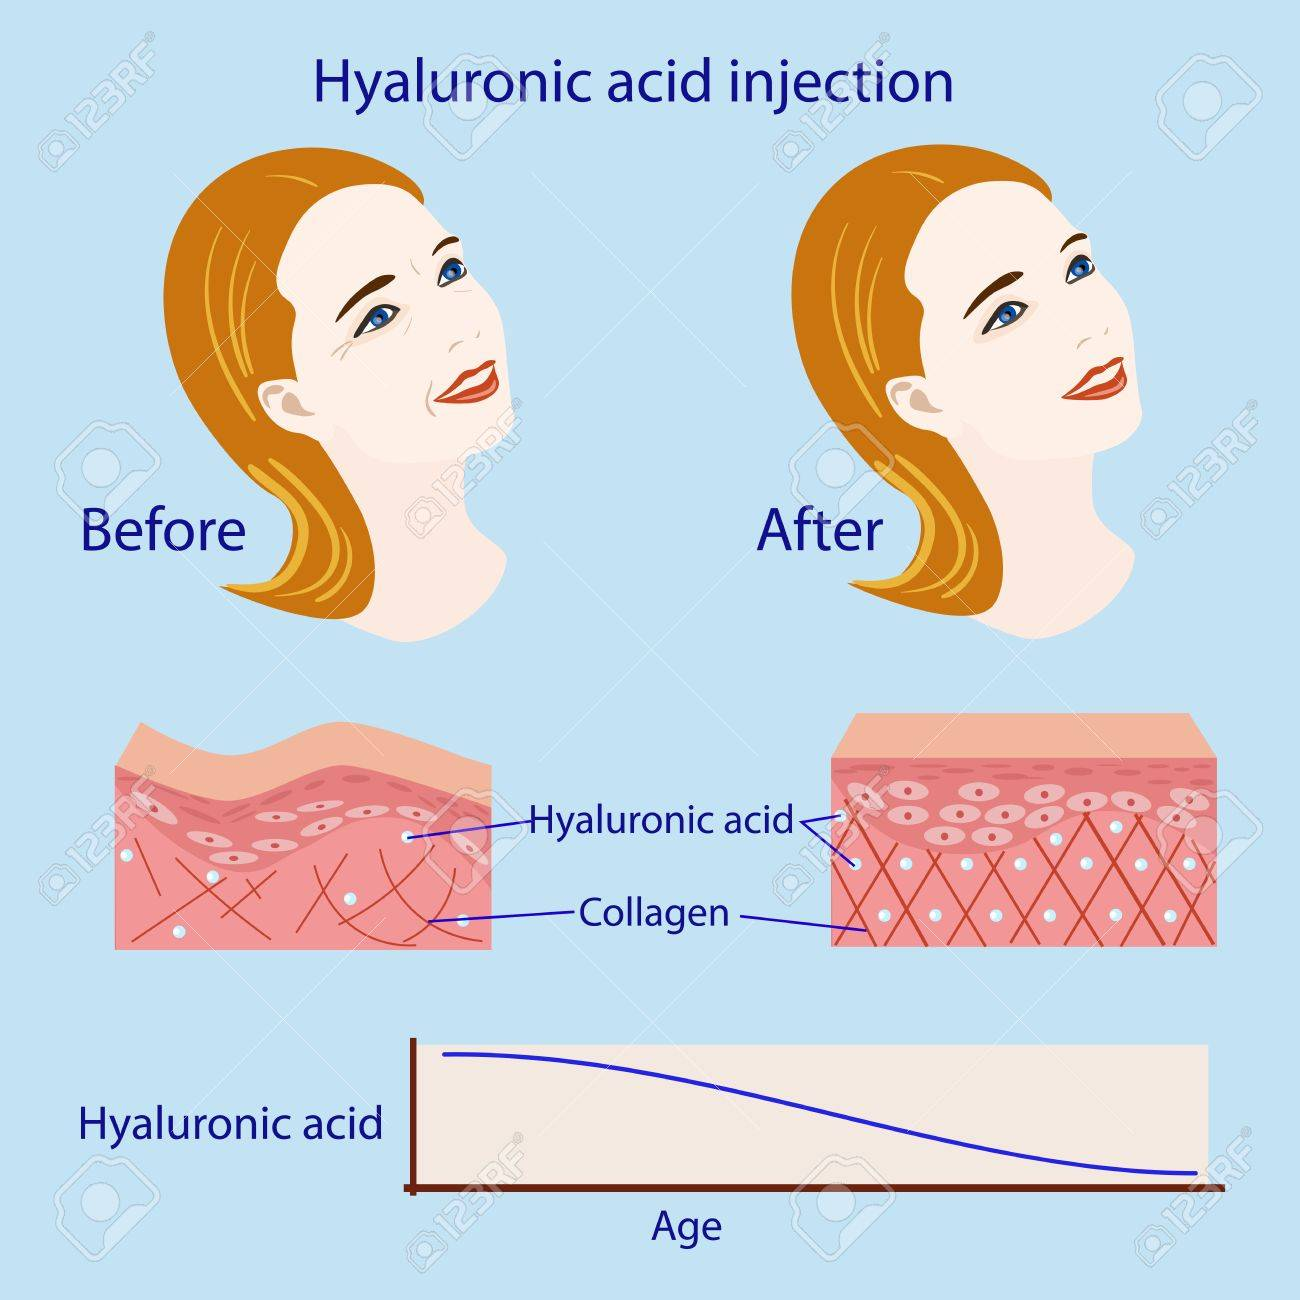 hight resolution of hyaluronic acid injection before and affect vector illustration diagram stock vector 87570992